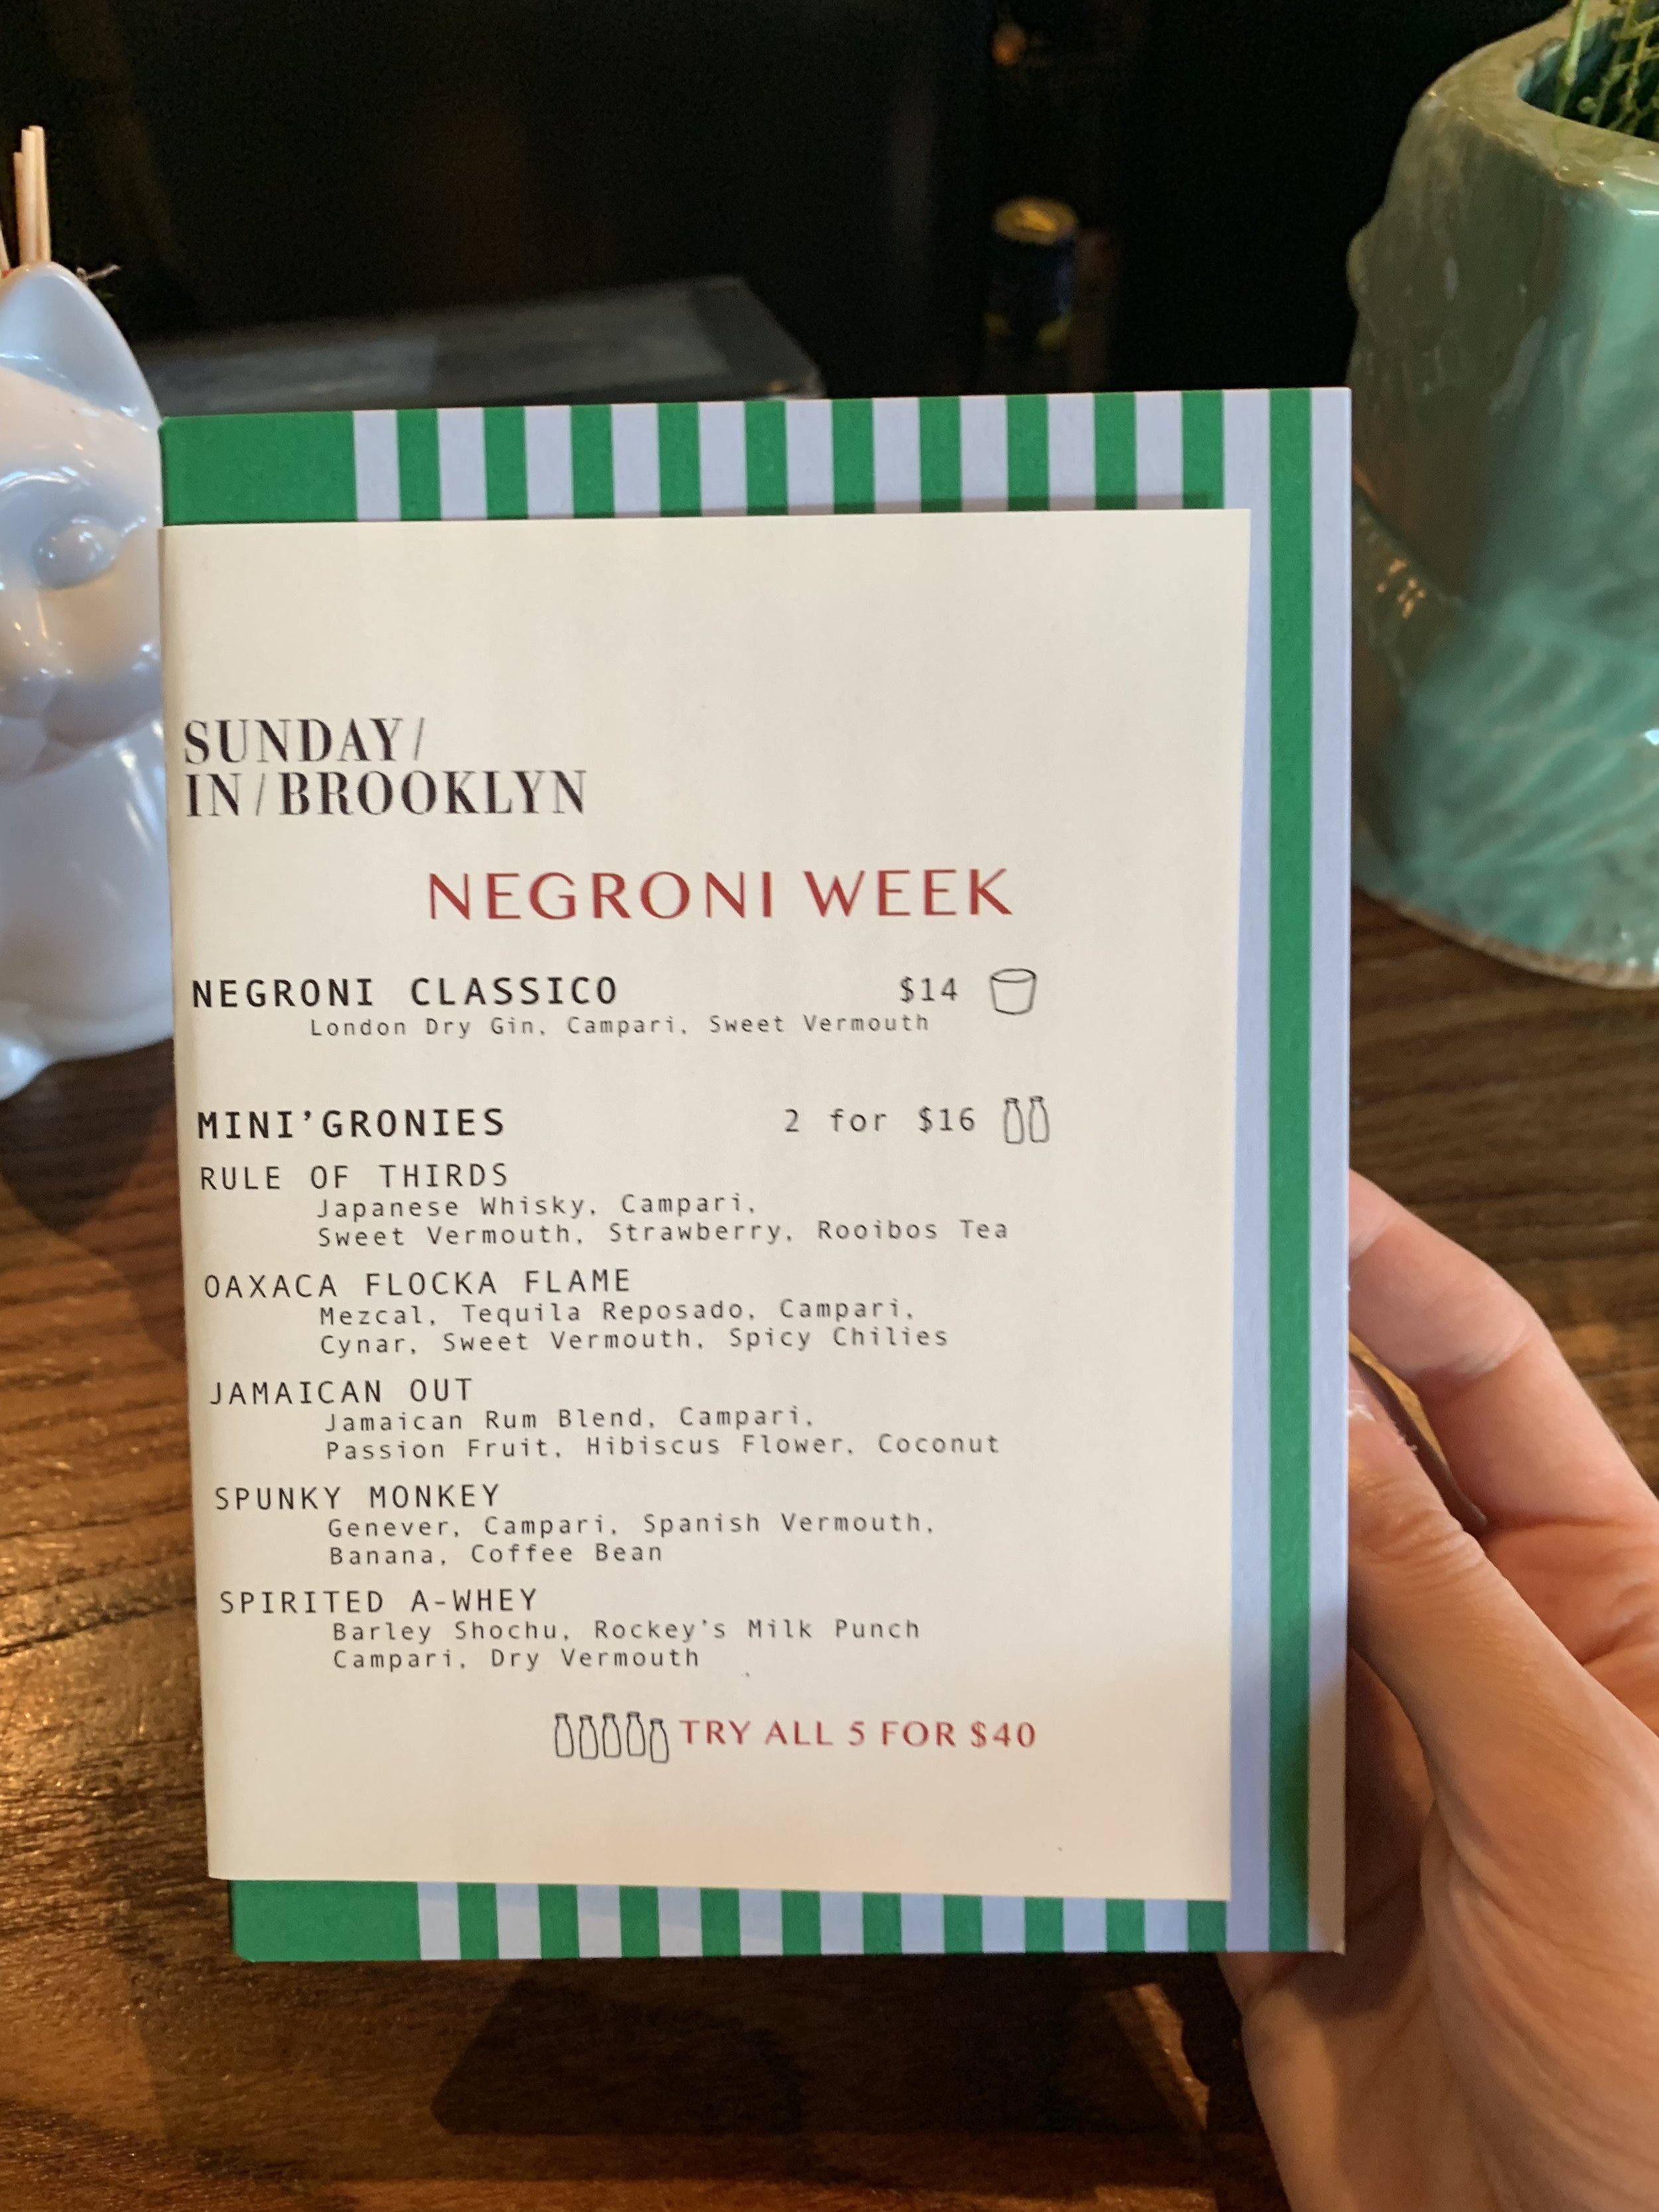 sunday in brooklyn - negroni menu.jpg